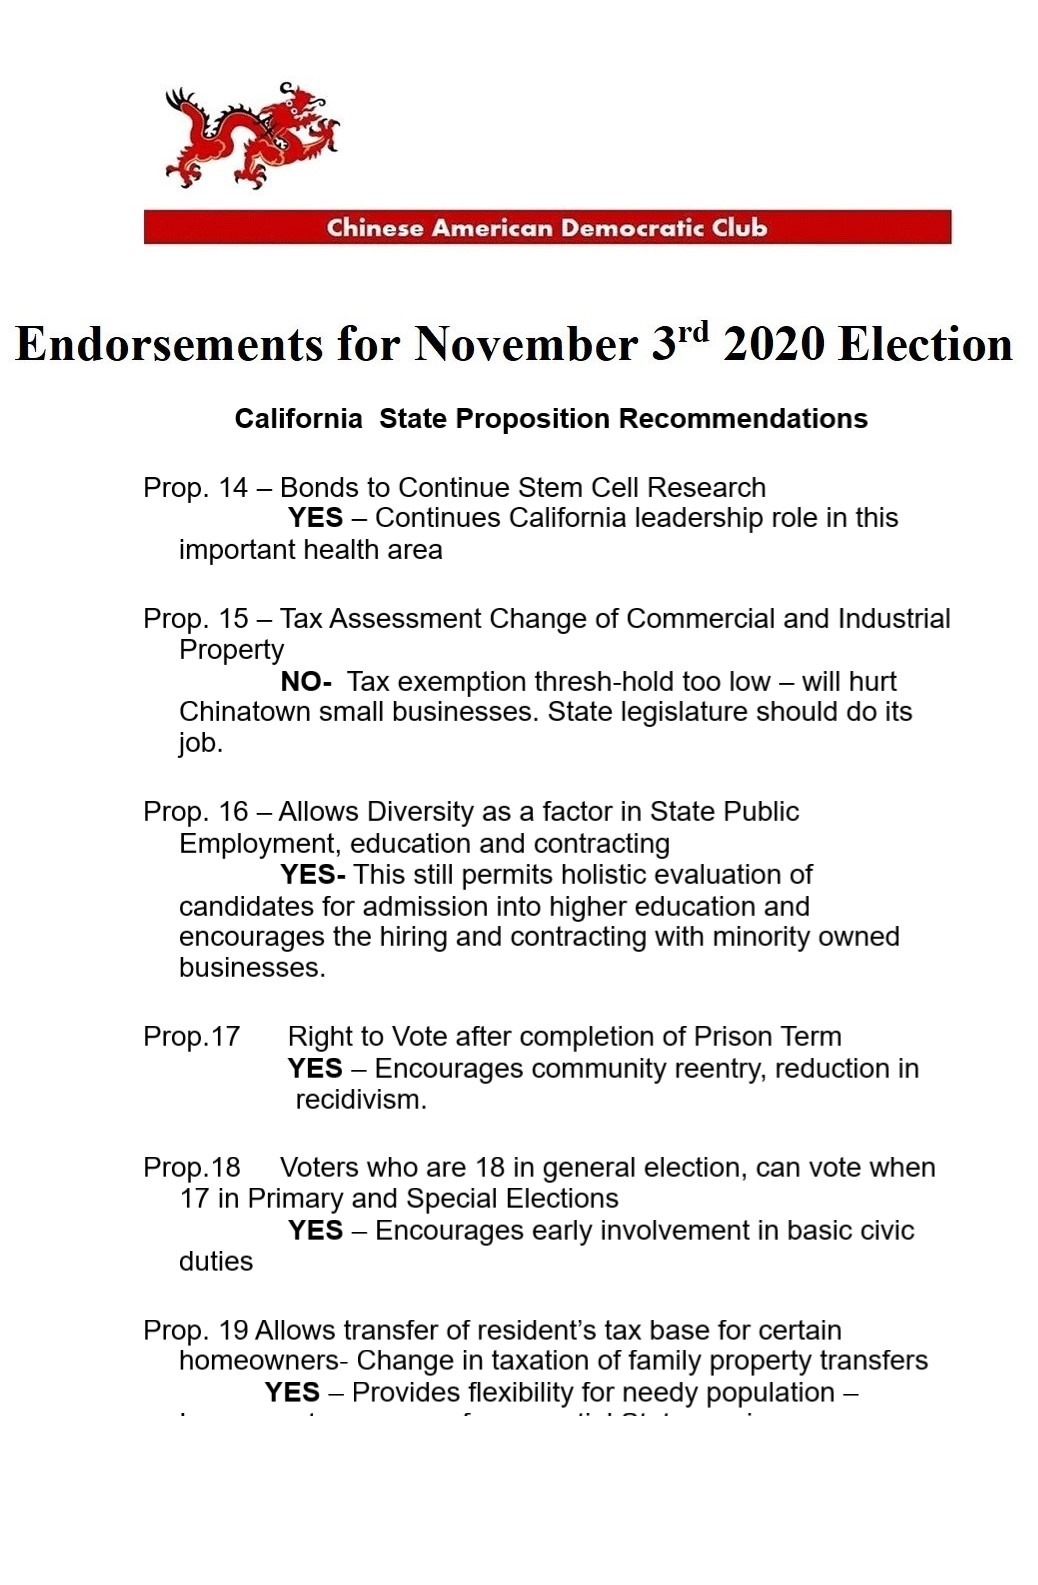 Endorsements_11-2020_Issues1.jpg